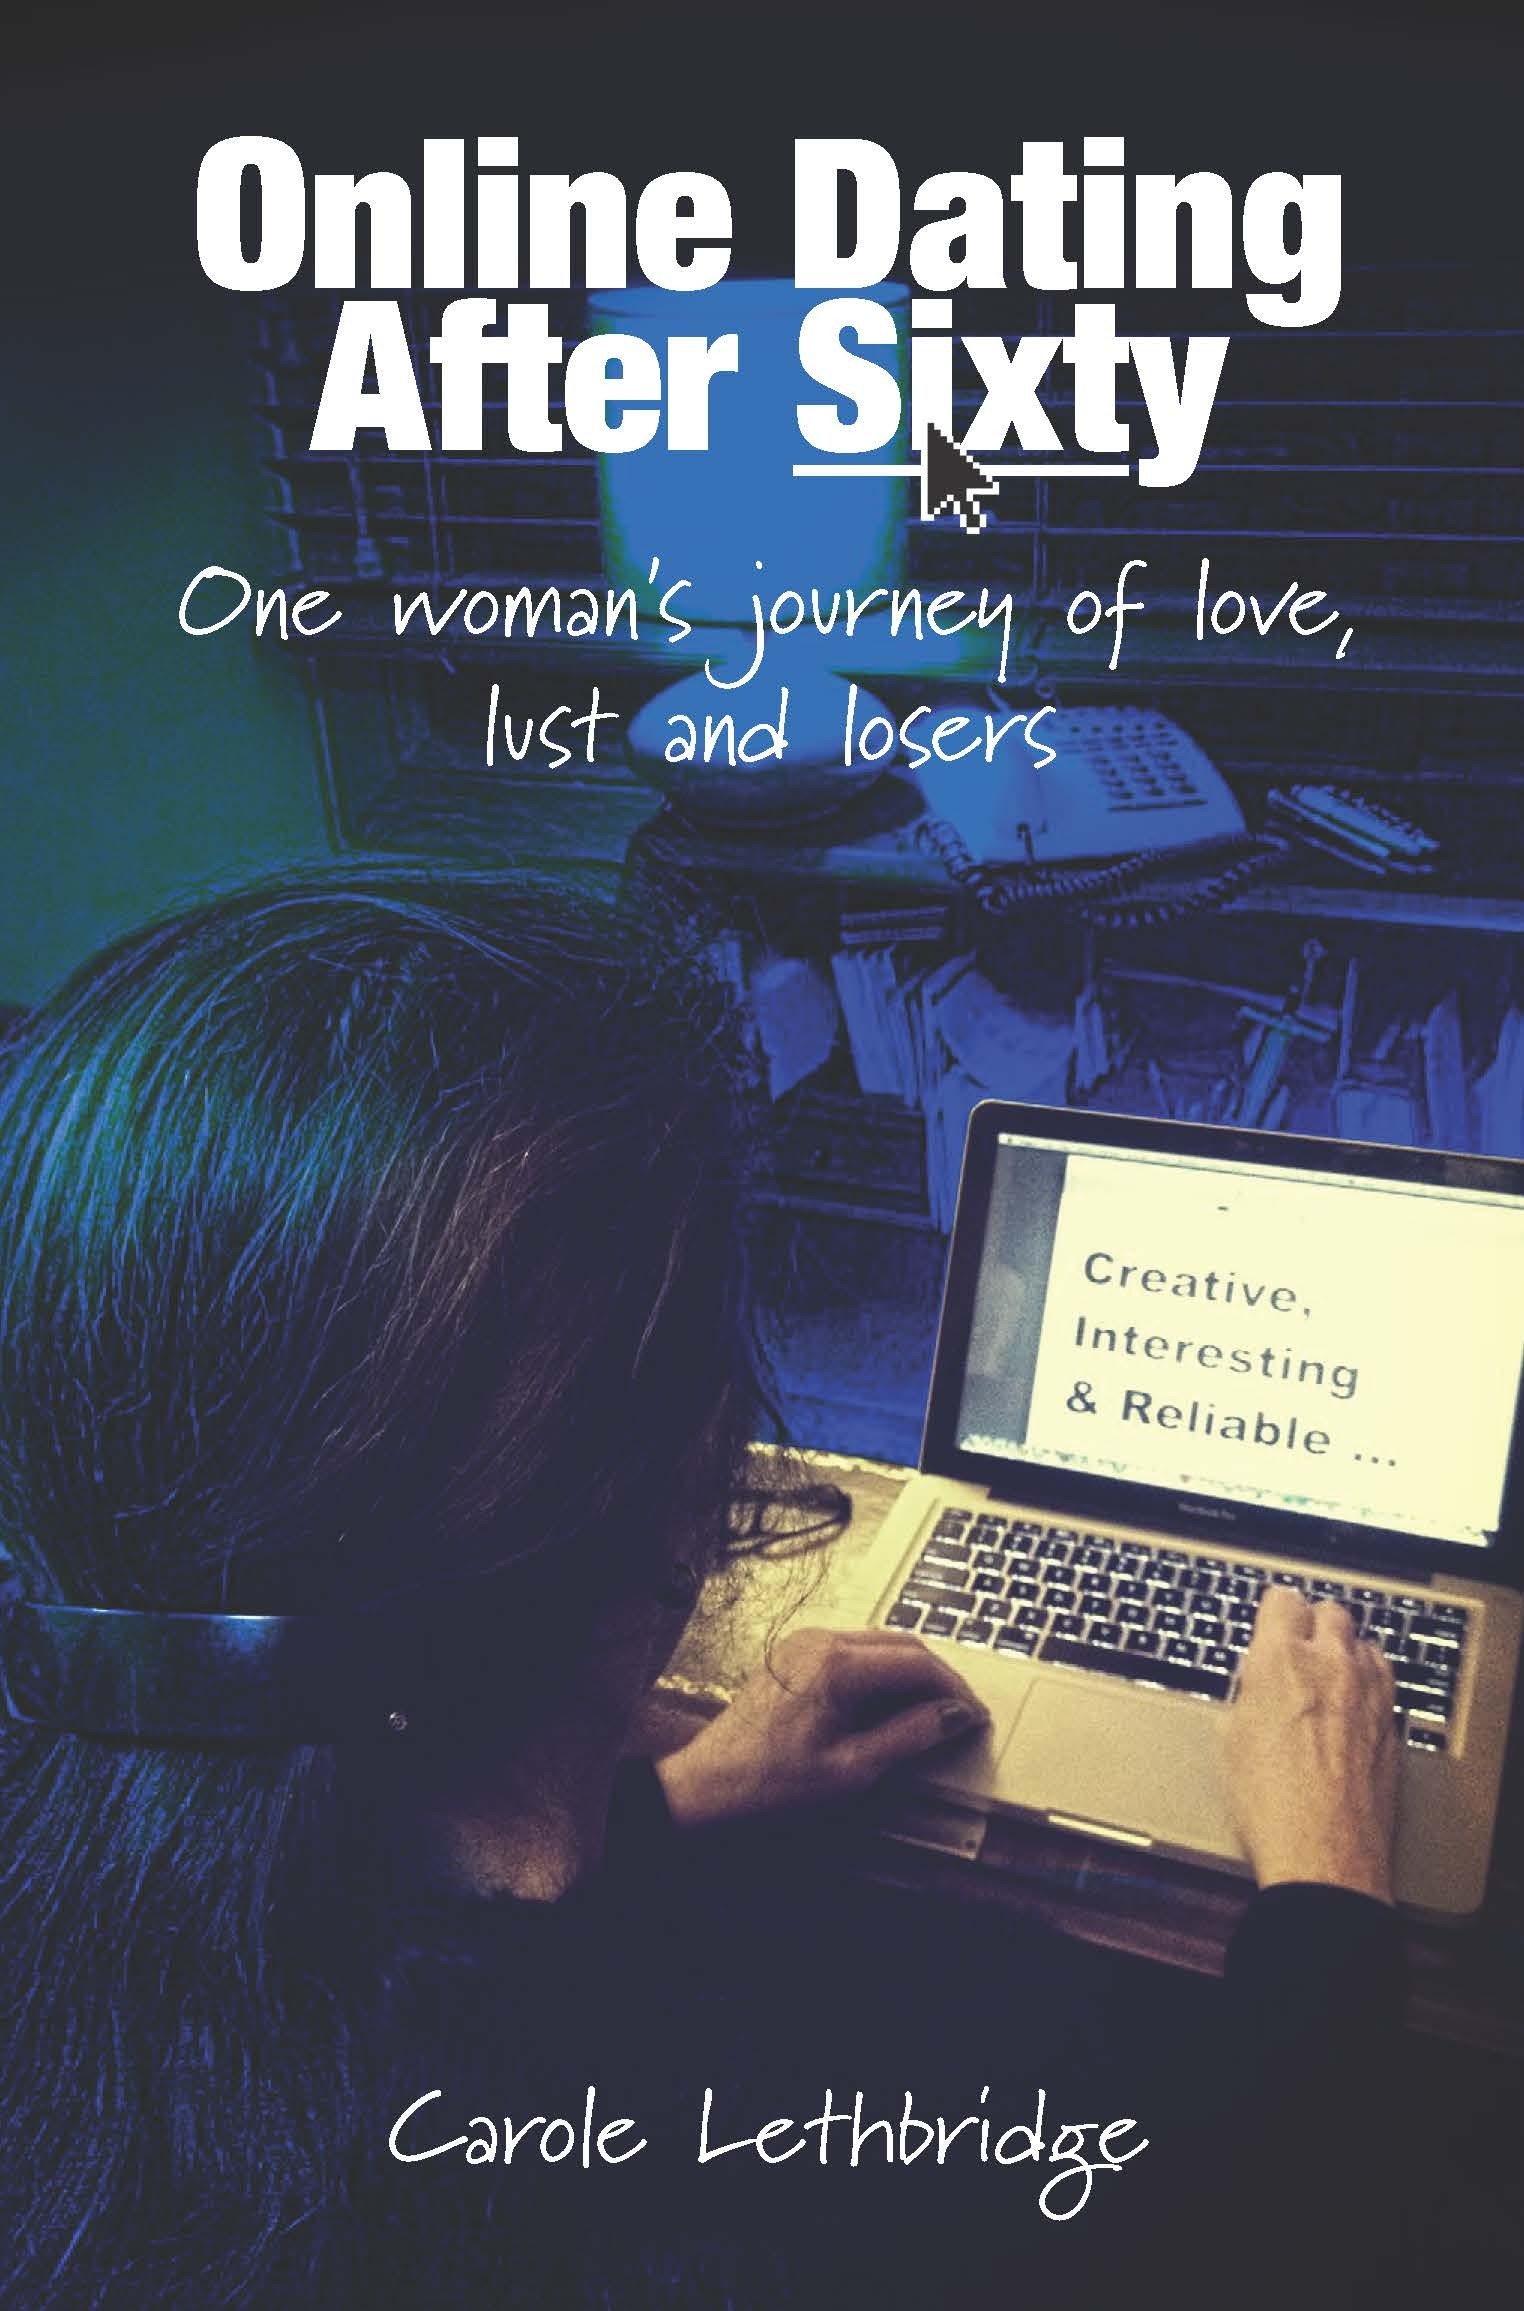 Online Dating After Sixty: One woman's journey of love, lust and losers